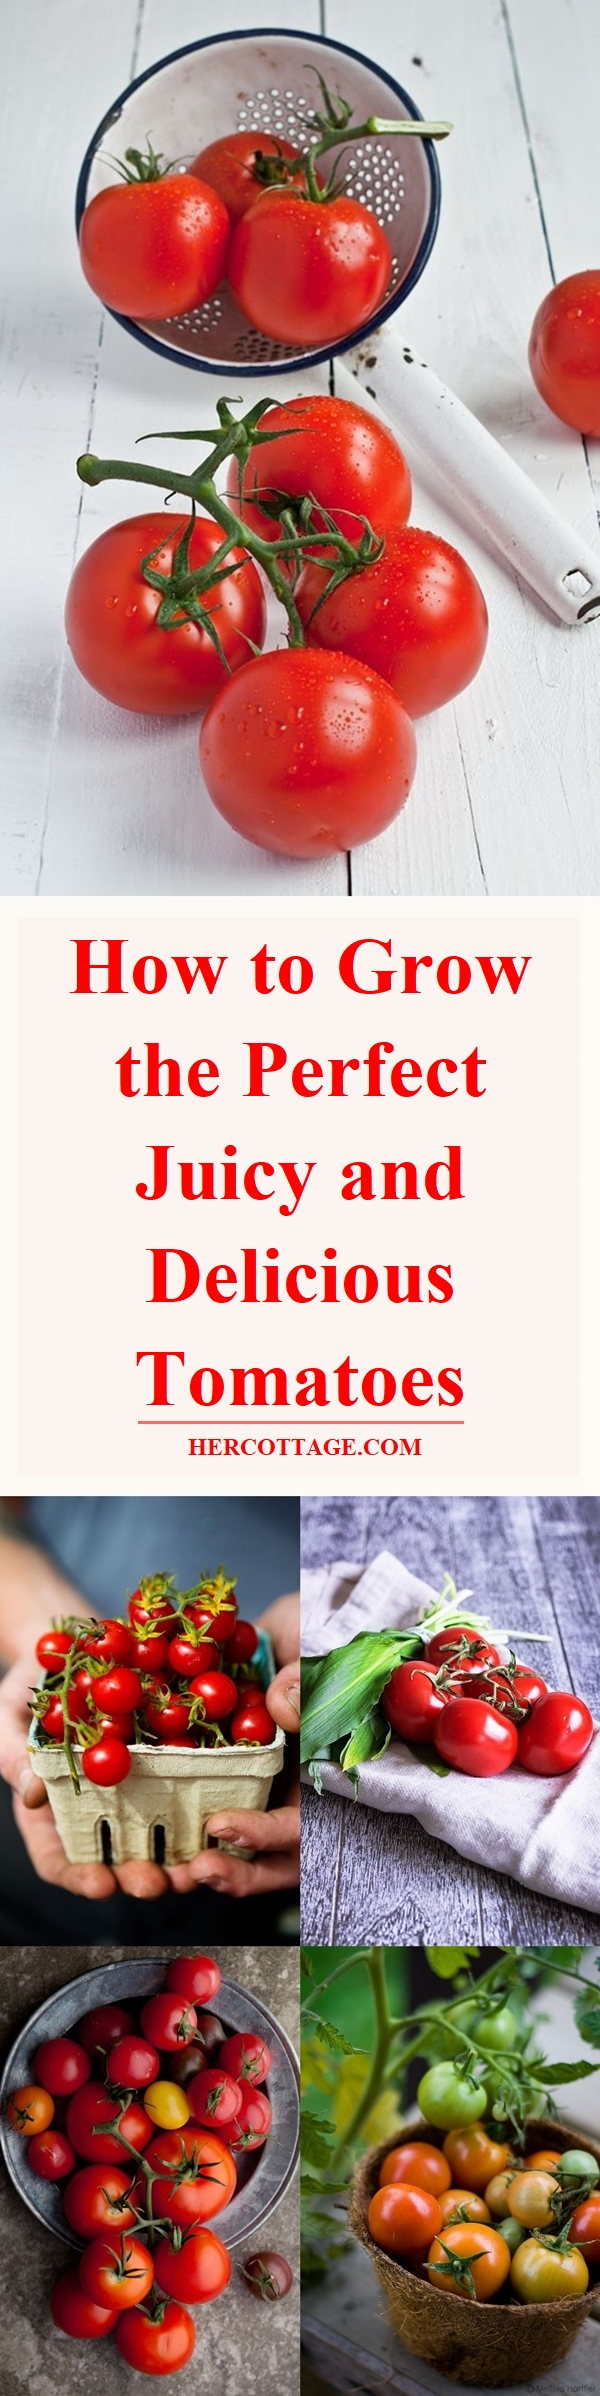 how-to-grow-the-perfect-juicy-and-delicious-tomatoes